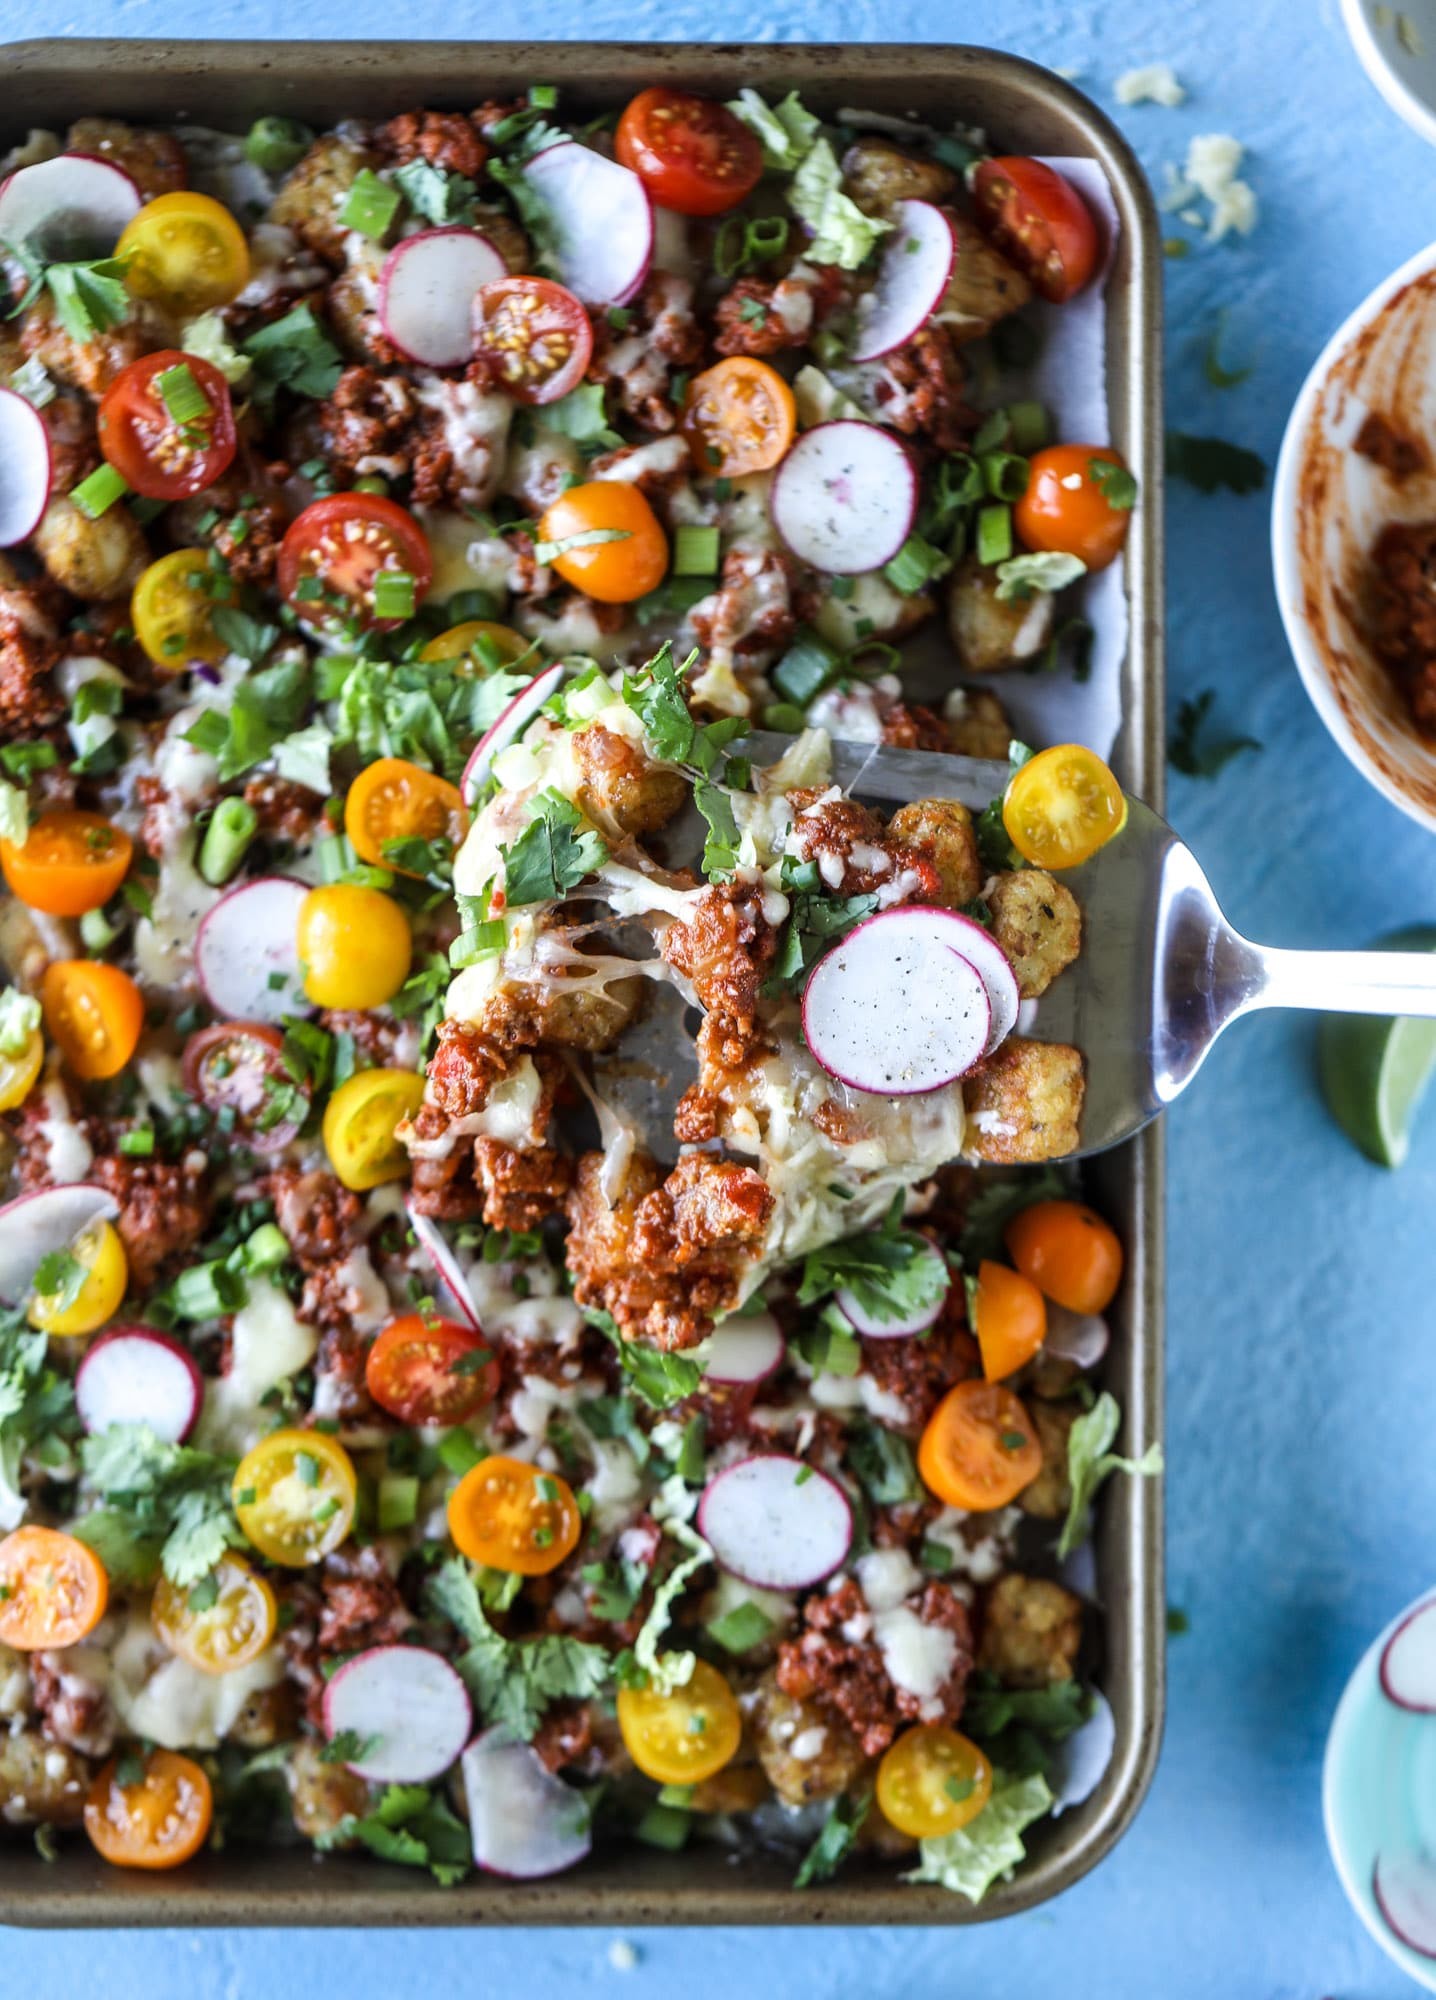 These tater tot nachos, otherwise known as totchos, are so delicious! They are cheesy and topped with a tangy, homemade sloppy joe mixture. Melted cheese, fresh tomatoes, scallions and chives come together for the best party food. I howsweeteats.com #totchos #tater #tot #nachos #sloppy #joes